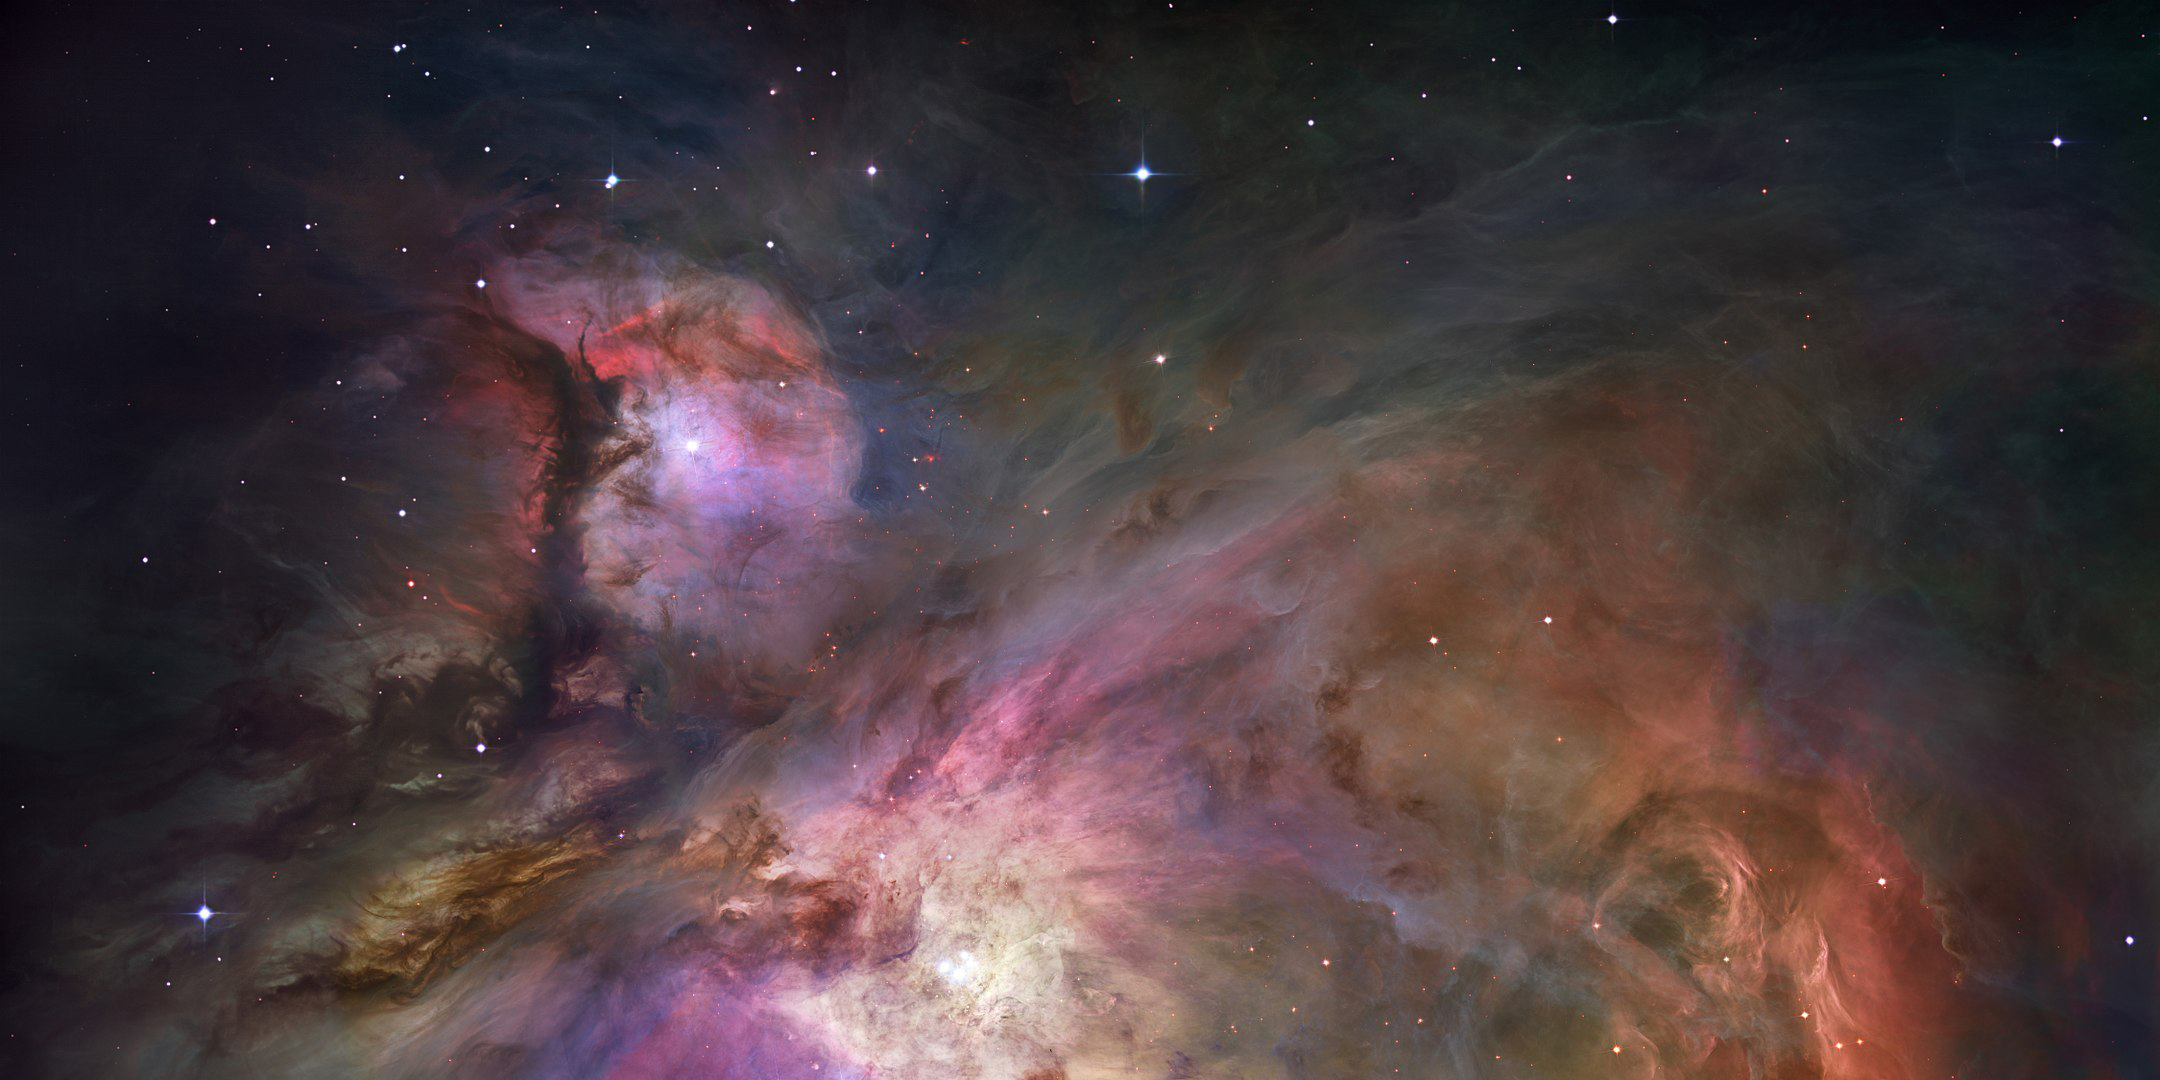 Image of star birth from Hubble Space Telescope